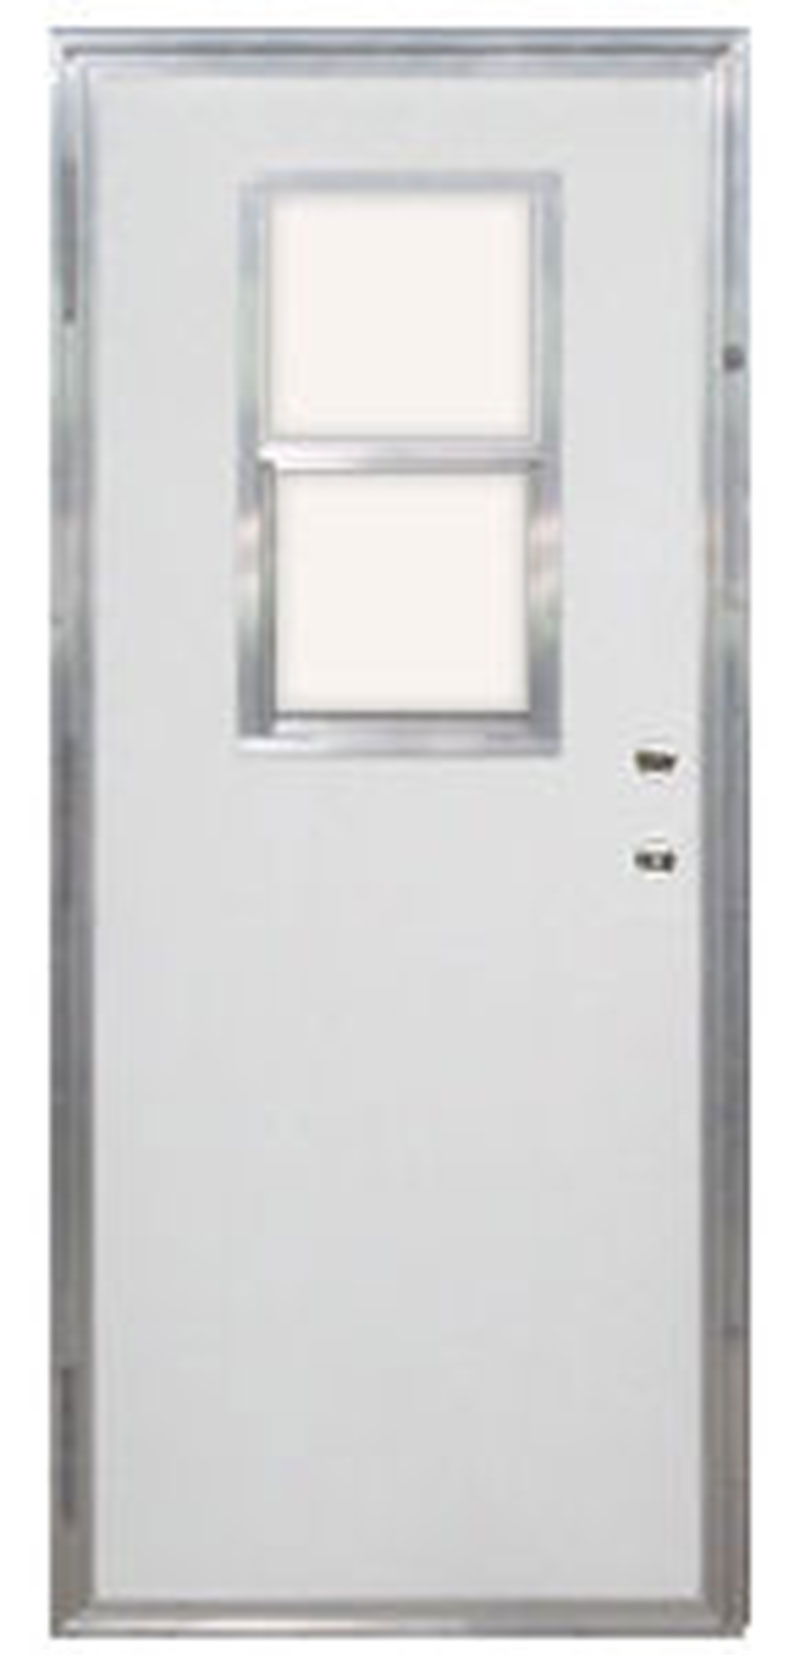 5. Out Swing Mobile Home Exterior Door With Vertical Sliding Window